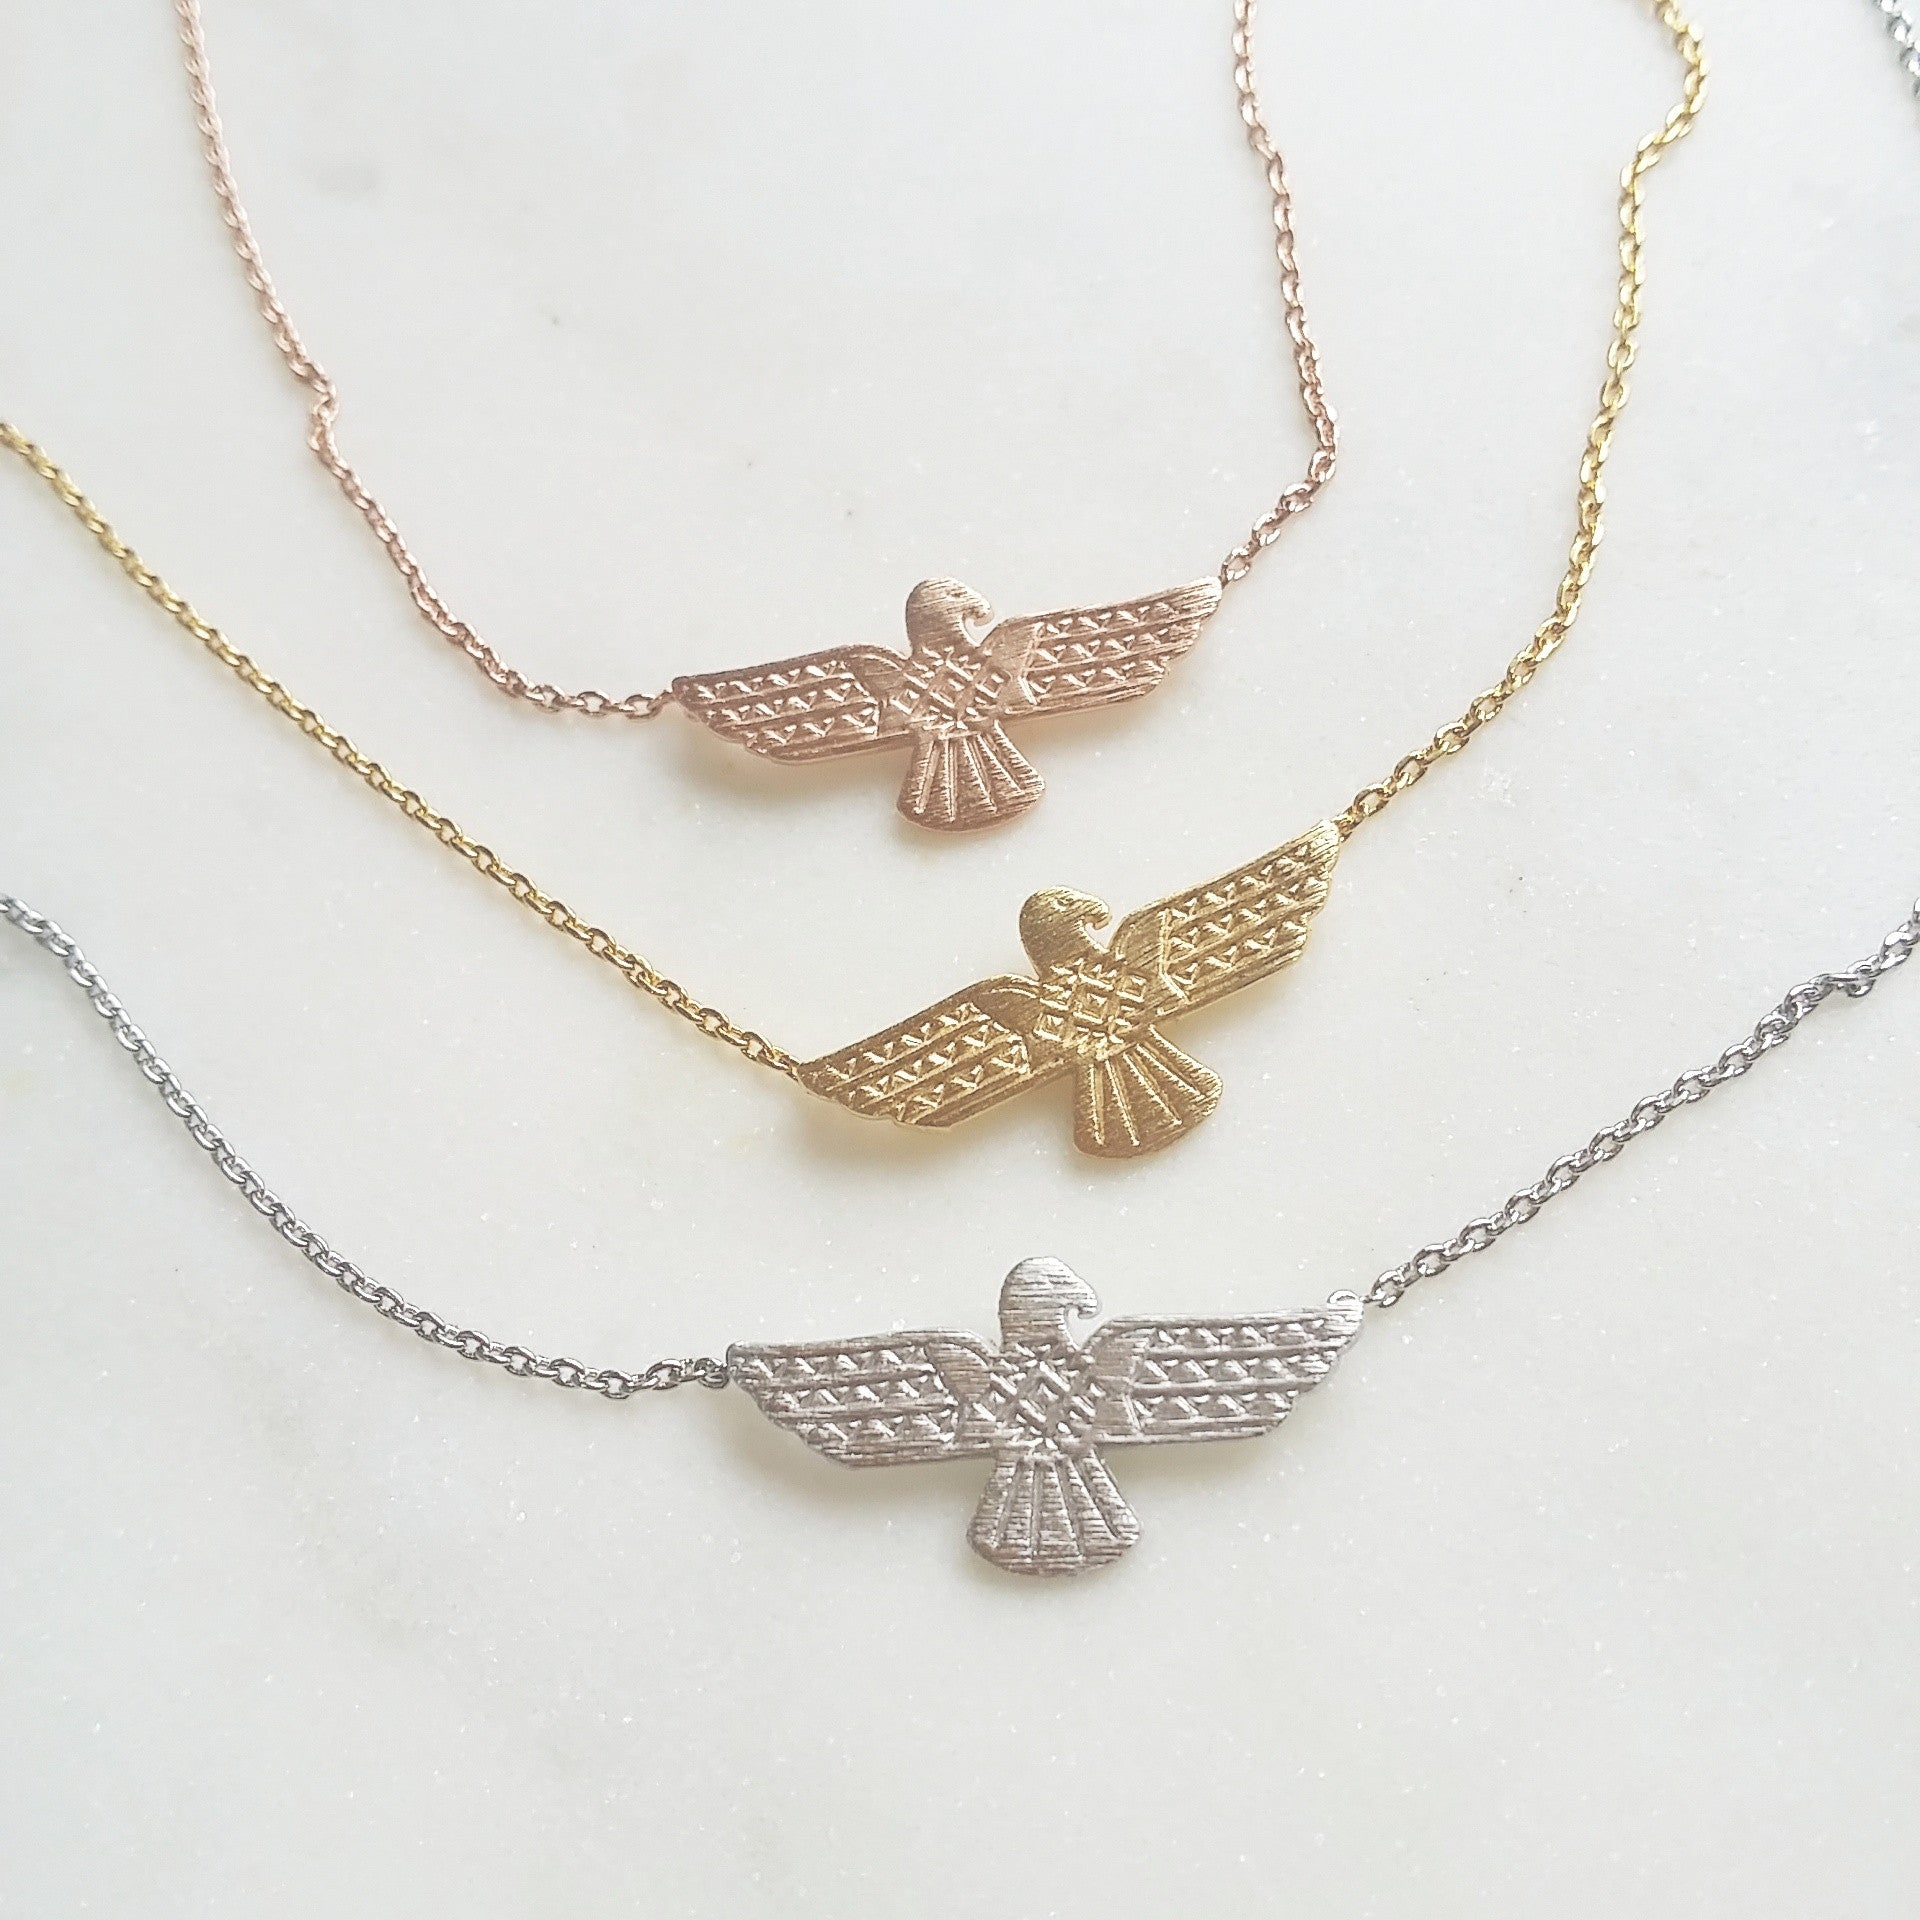 eagle gold overstock today necklace shipping hills jewelry pendant product free watches black